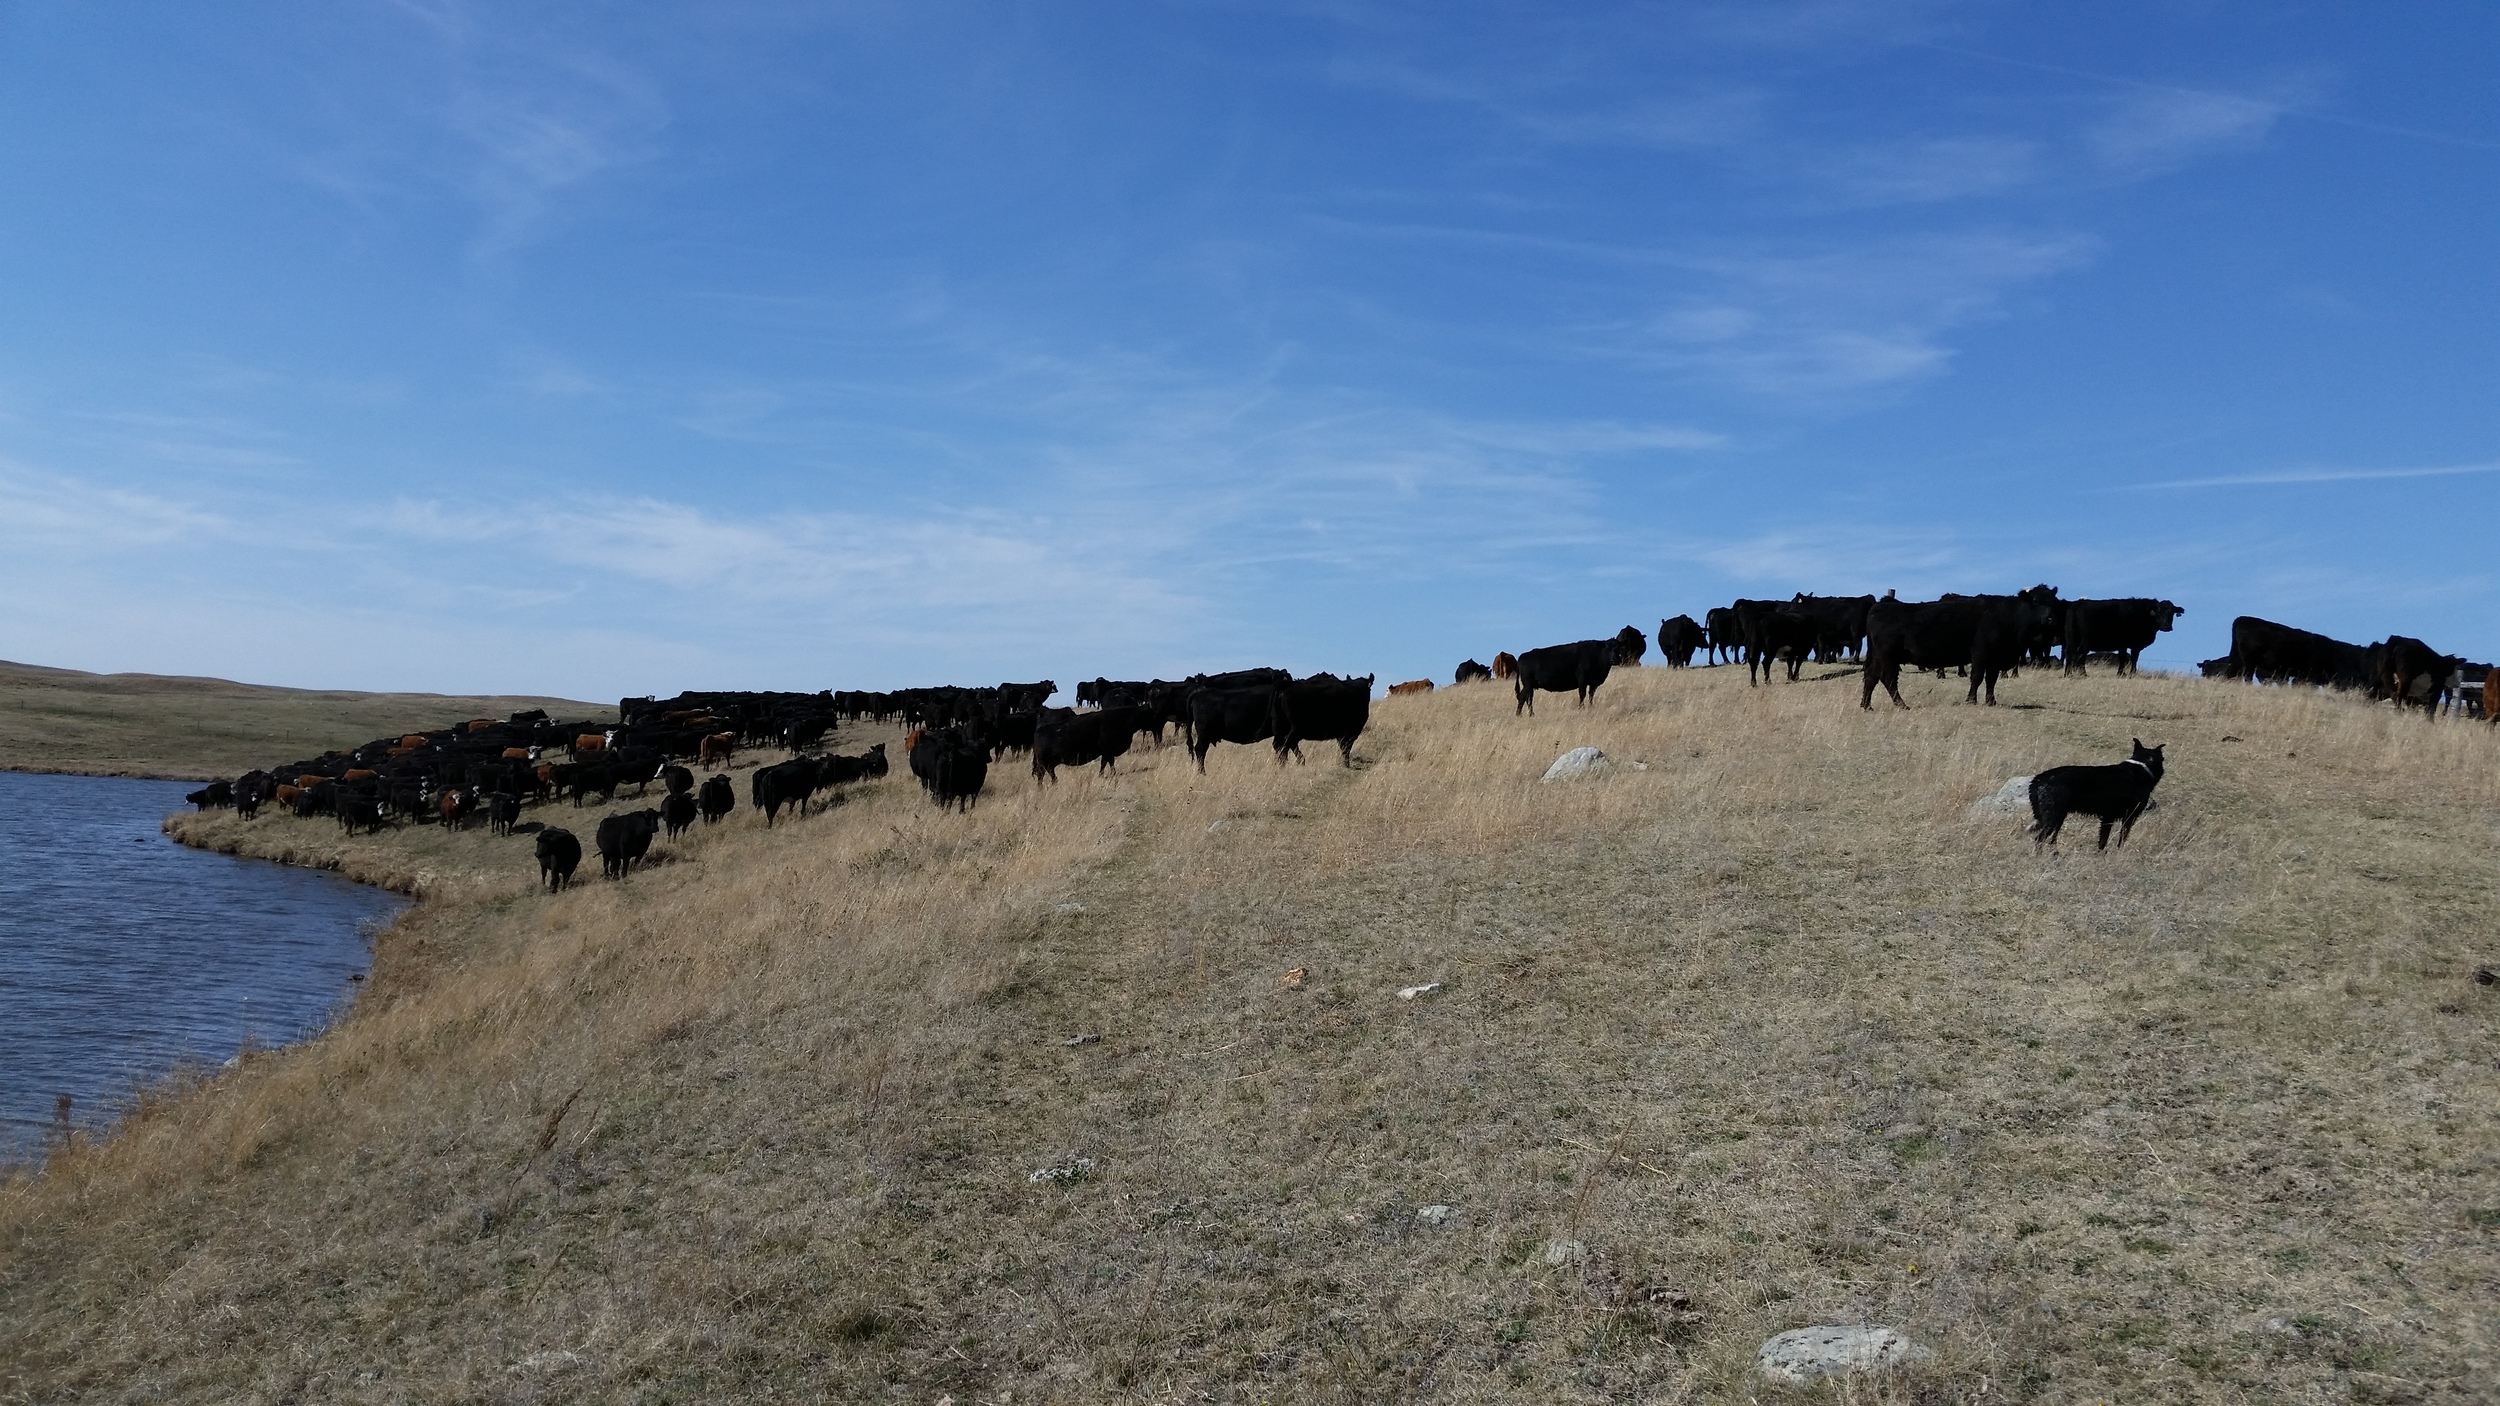 LOTS AND LOTS OF COWS